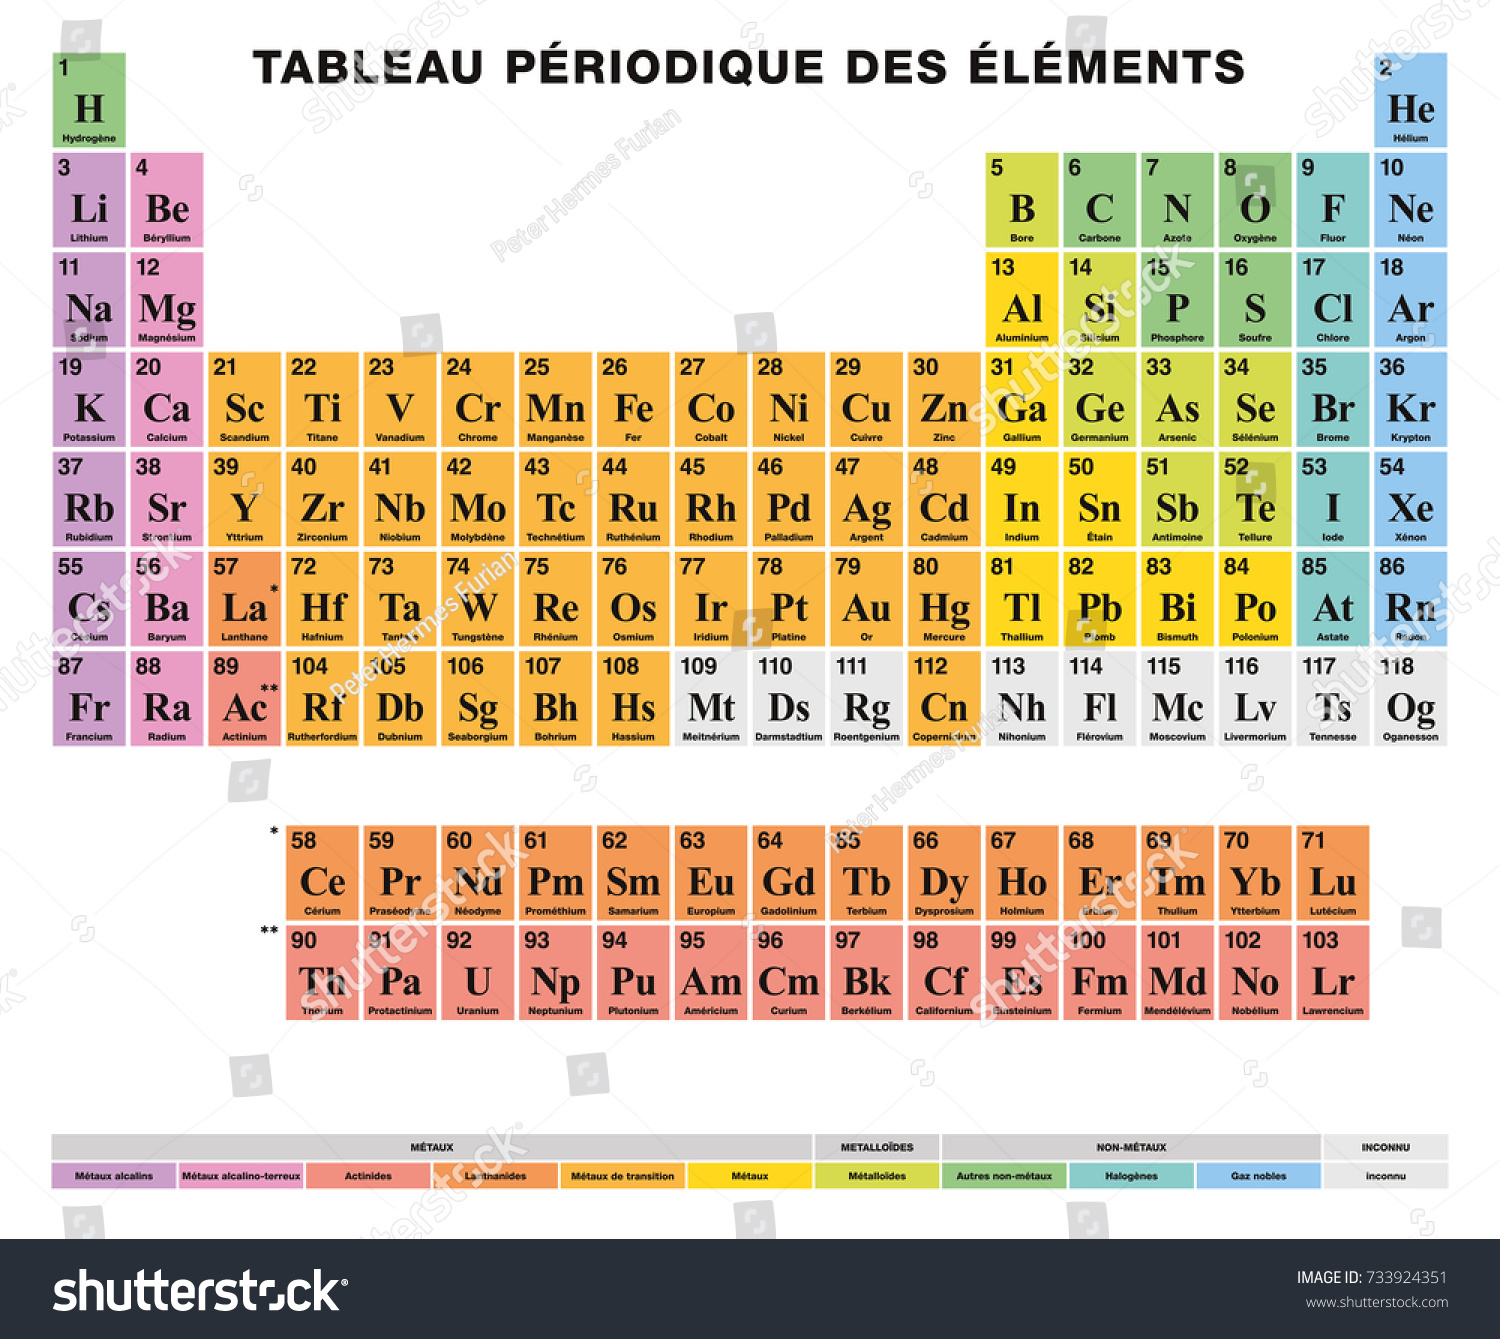 Periodic table labeling images periodic table images periodic table labeling image collections periodic table images periodic table labeling choice image periodic table images gamestrikefo Image collections